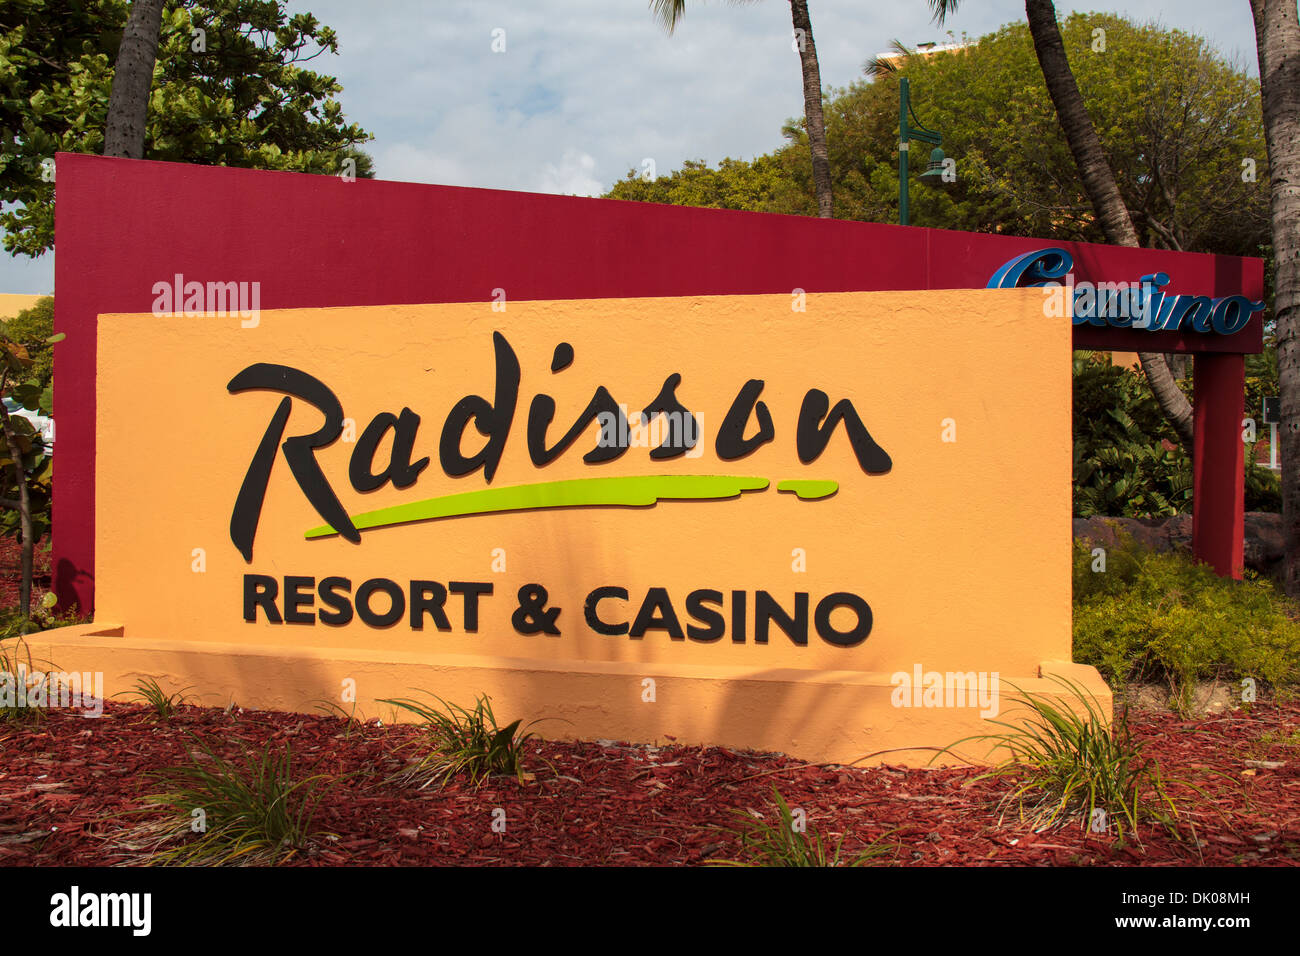 sign for the radisson aruba resort casino & spa entrance from palm